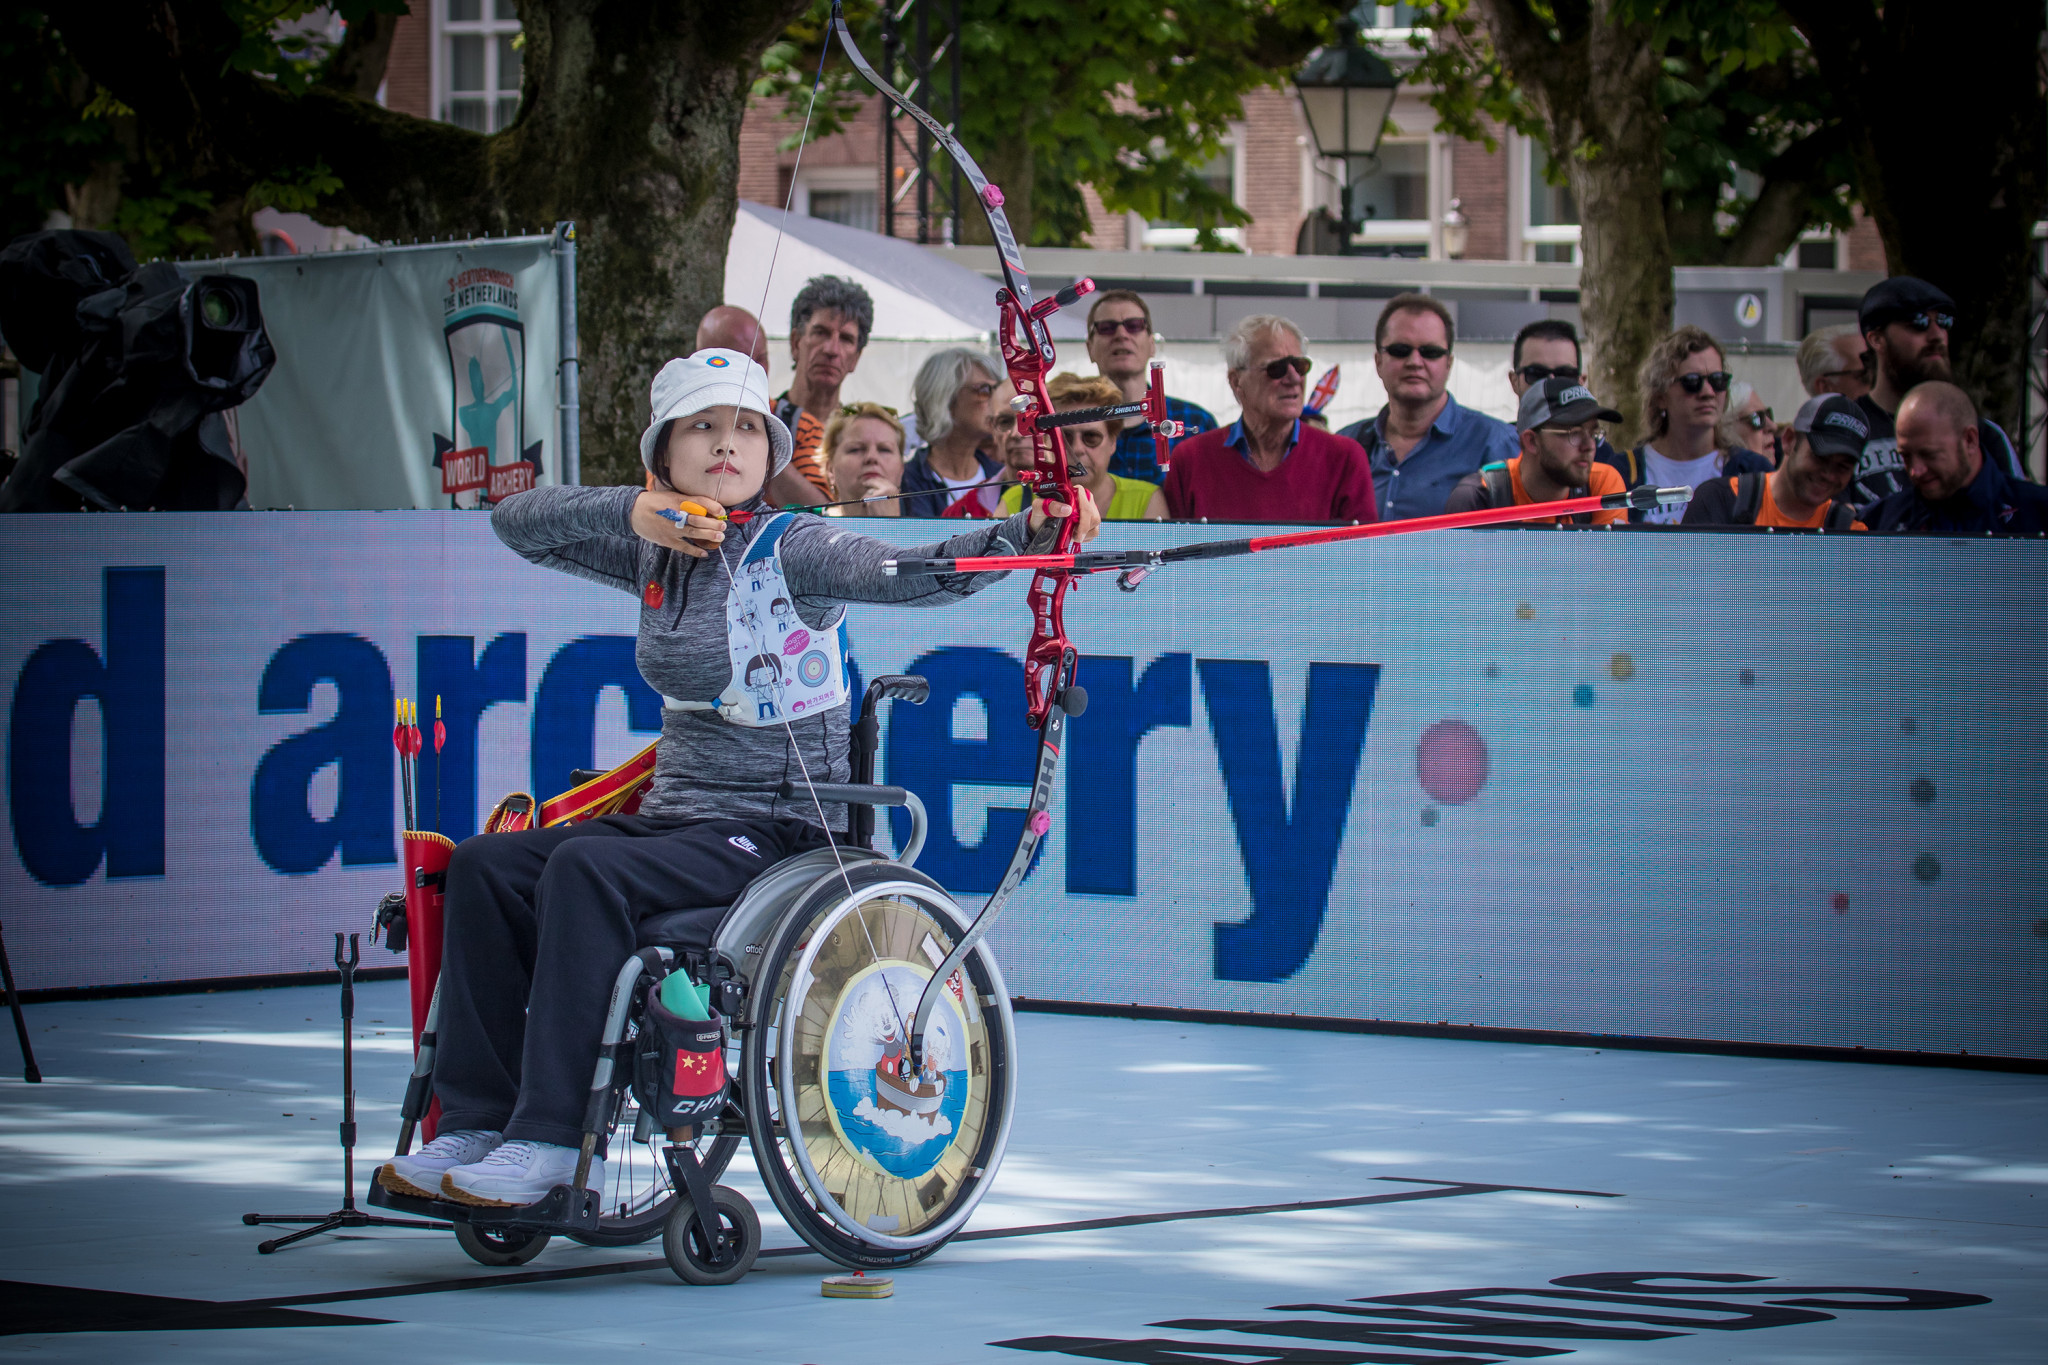 The 2019 World Archery Para Championships were held in 's-Hertogenbosch ©Getty Images